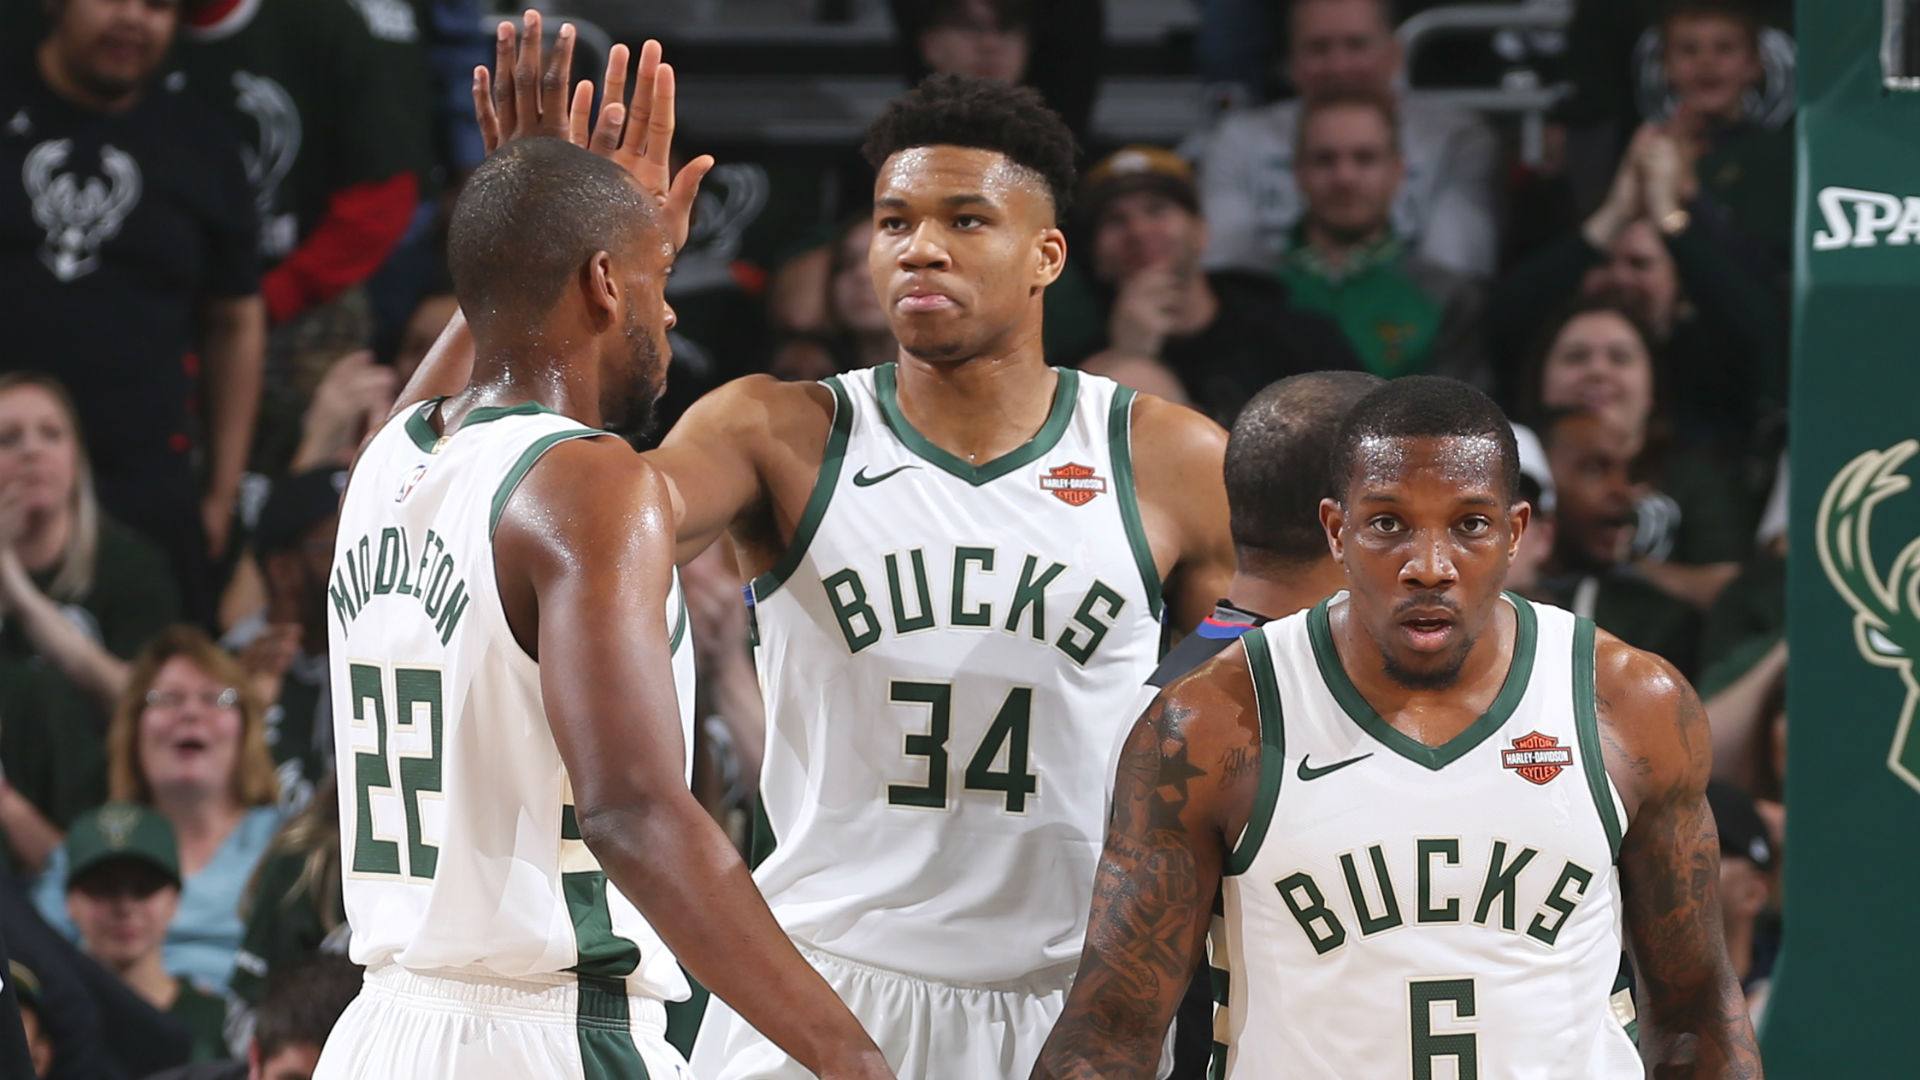 NBA Season Preview 2019-20: Can Giannis Antetokounmpo lead the Milwaukee Bucks to an NBA title?